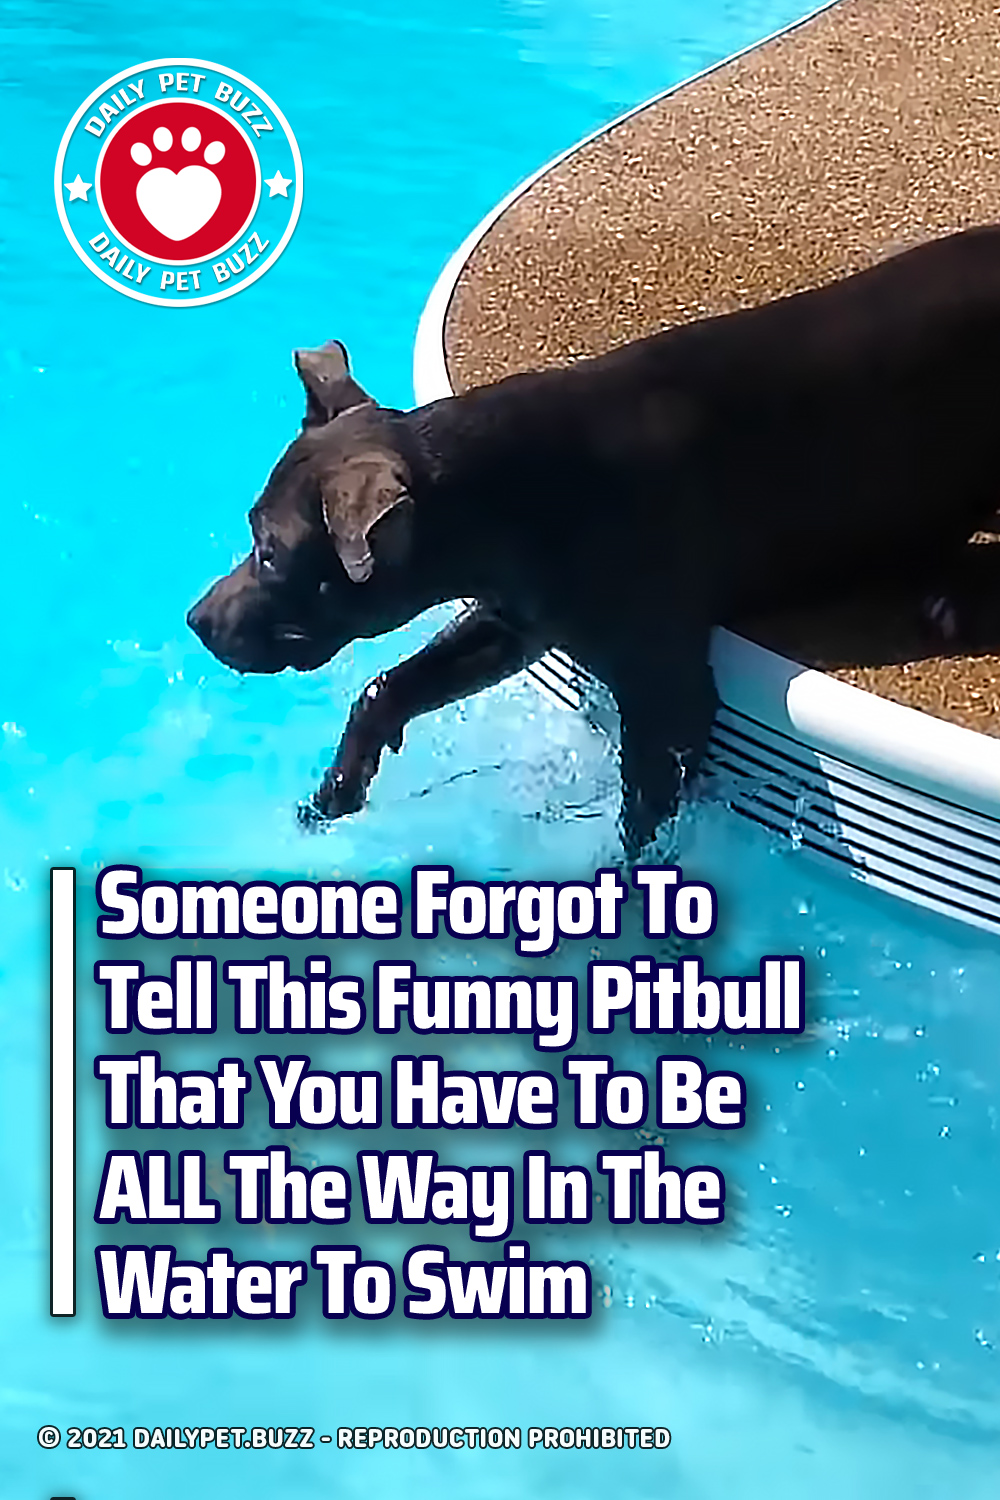 Someone Forgot To Tell This Funny Pitbull That You Have To Be ALL The Way In The Water To Swim